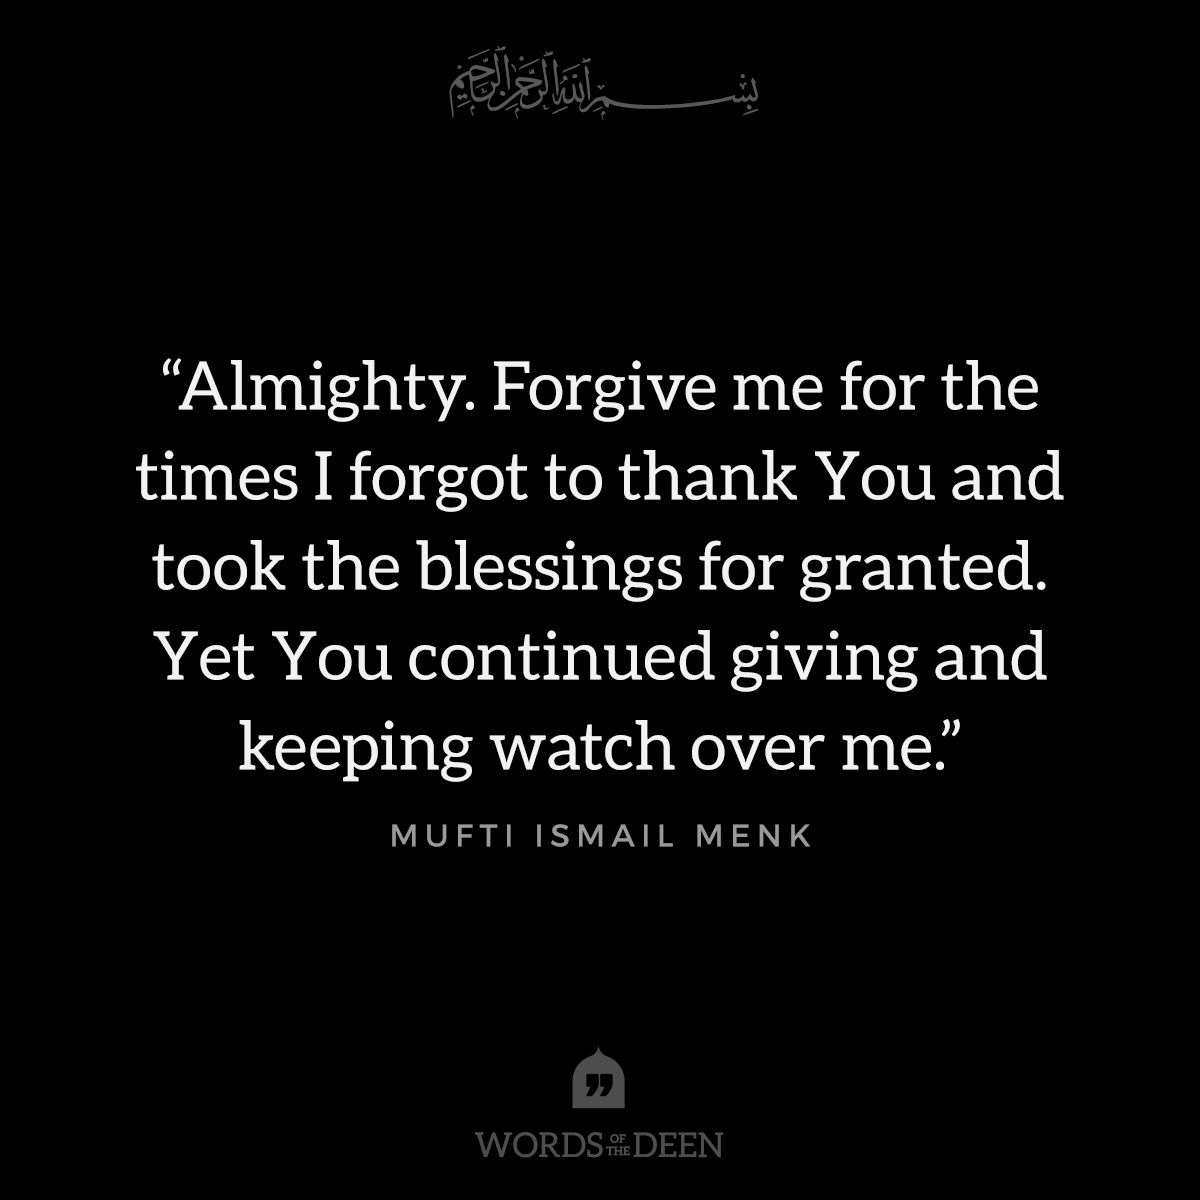 Forgive Me Quotes Almightyforgive Me For The Times I Forgot To Thank You And Took